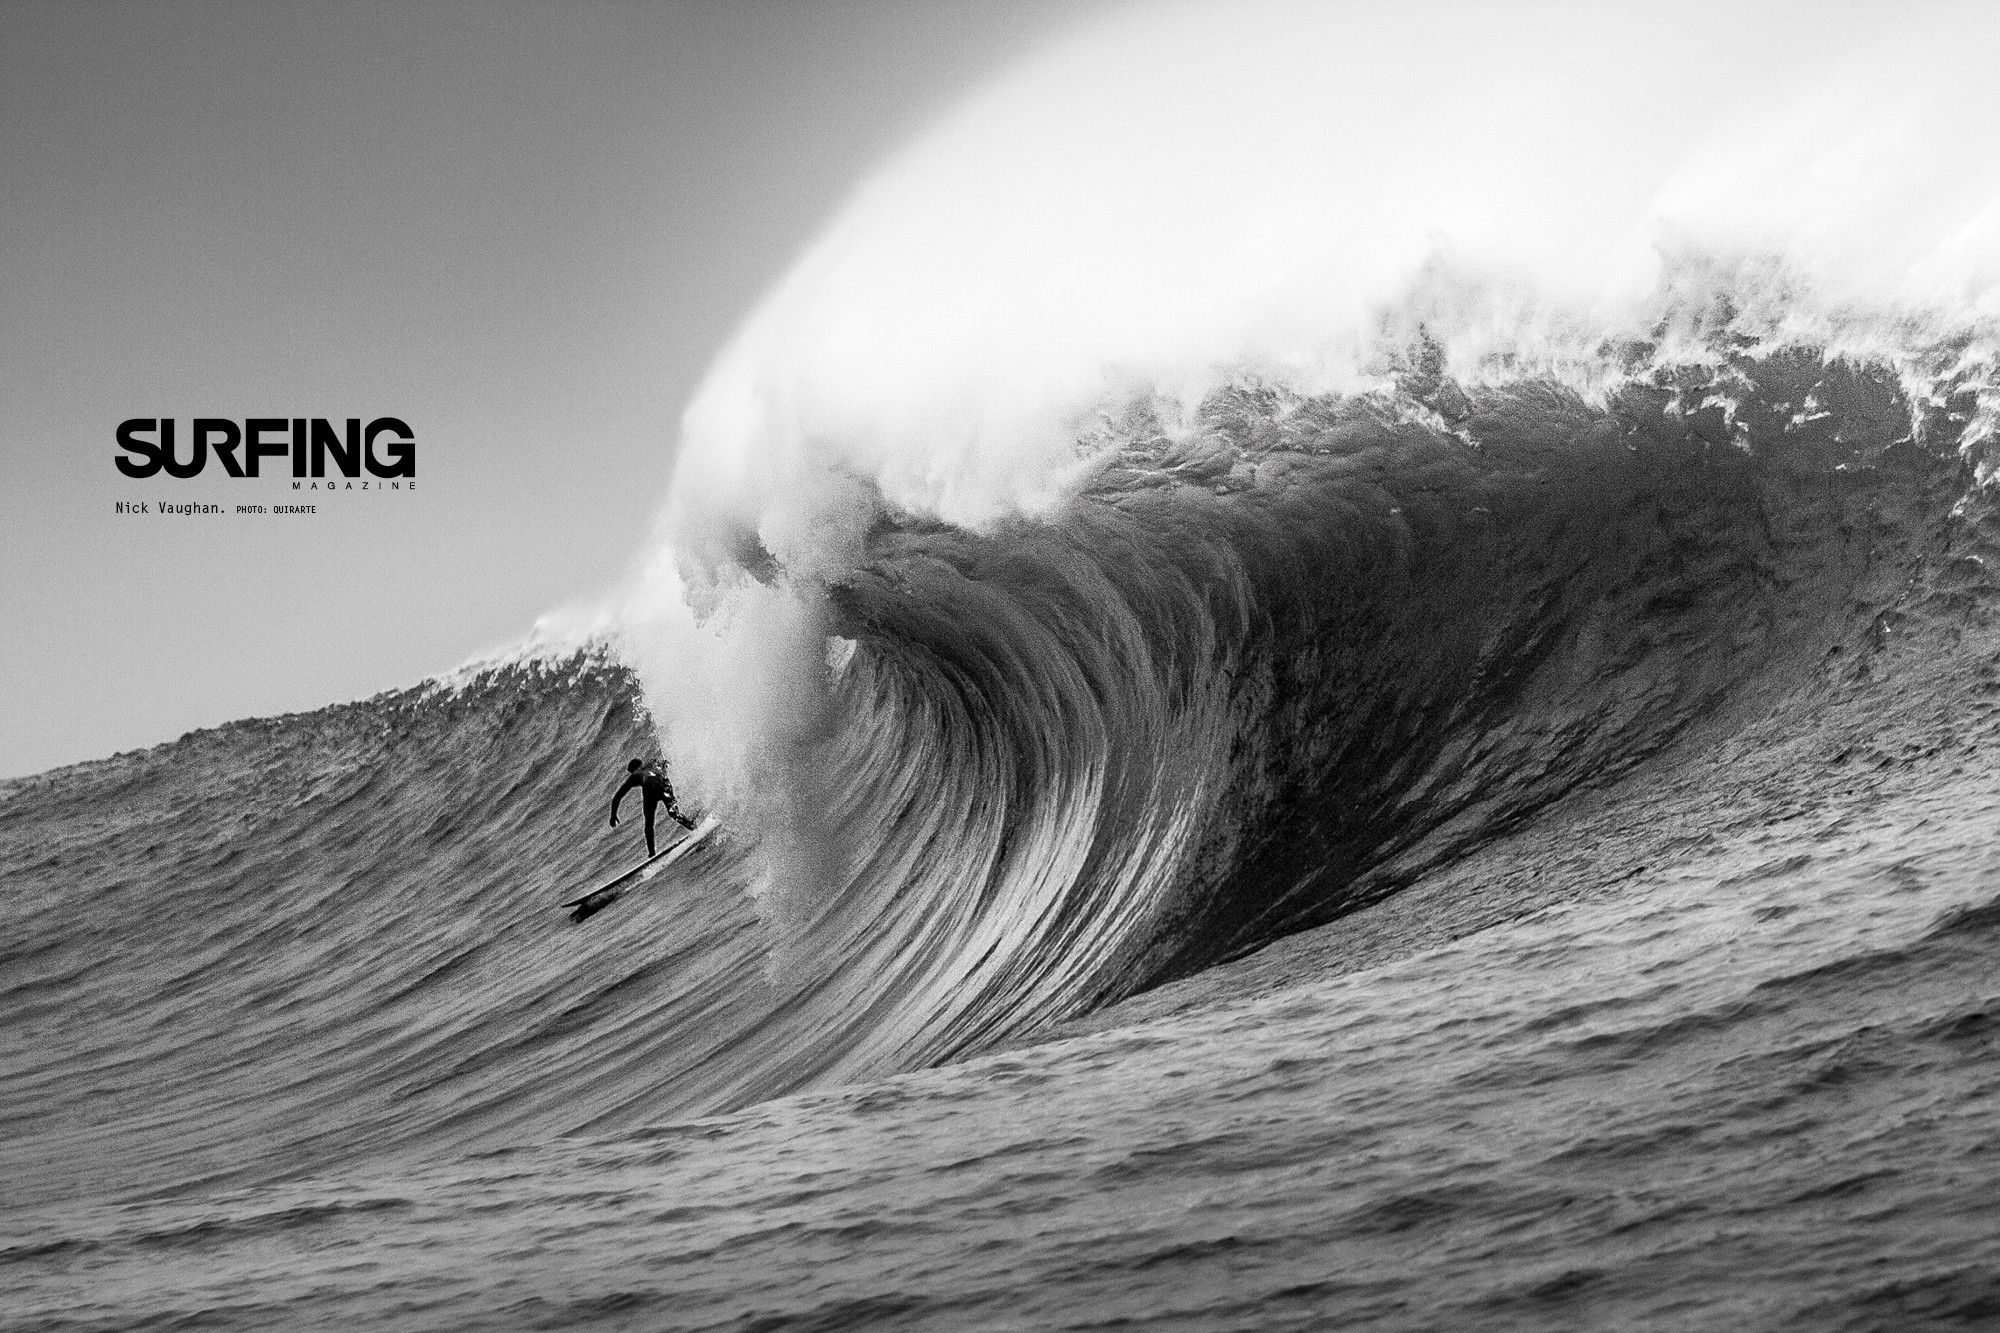 Dowload: Nic Vaughan. Photo: Quirarte griffinnelly